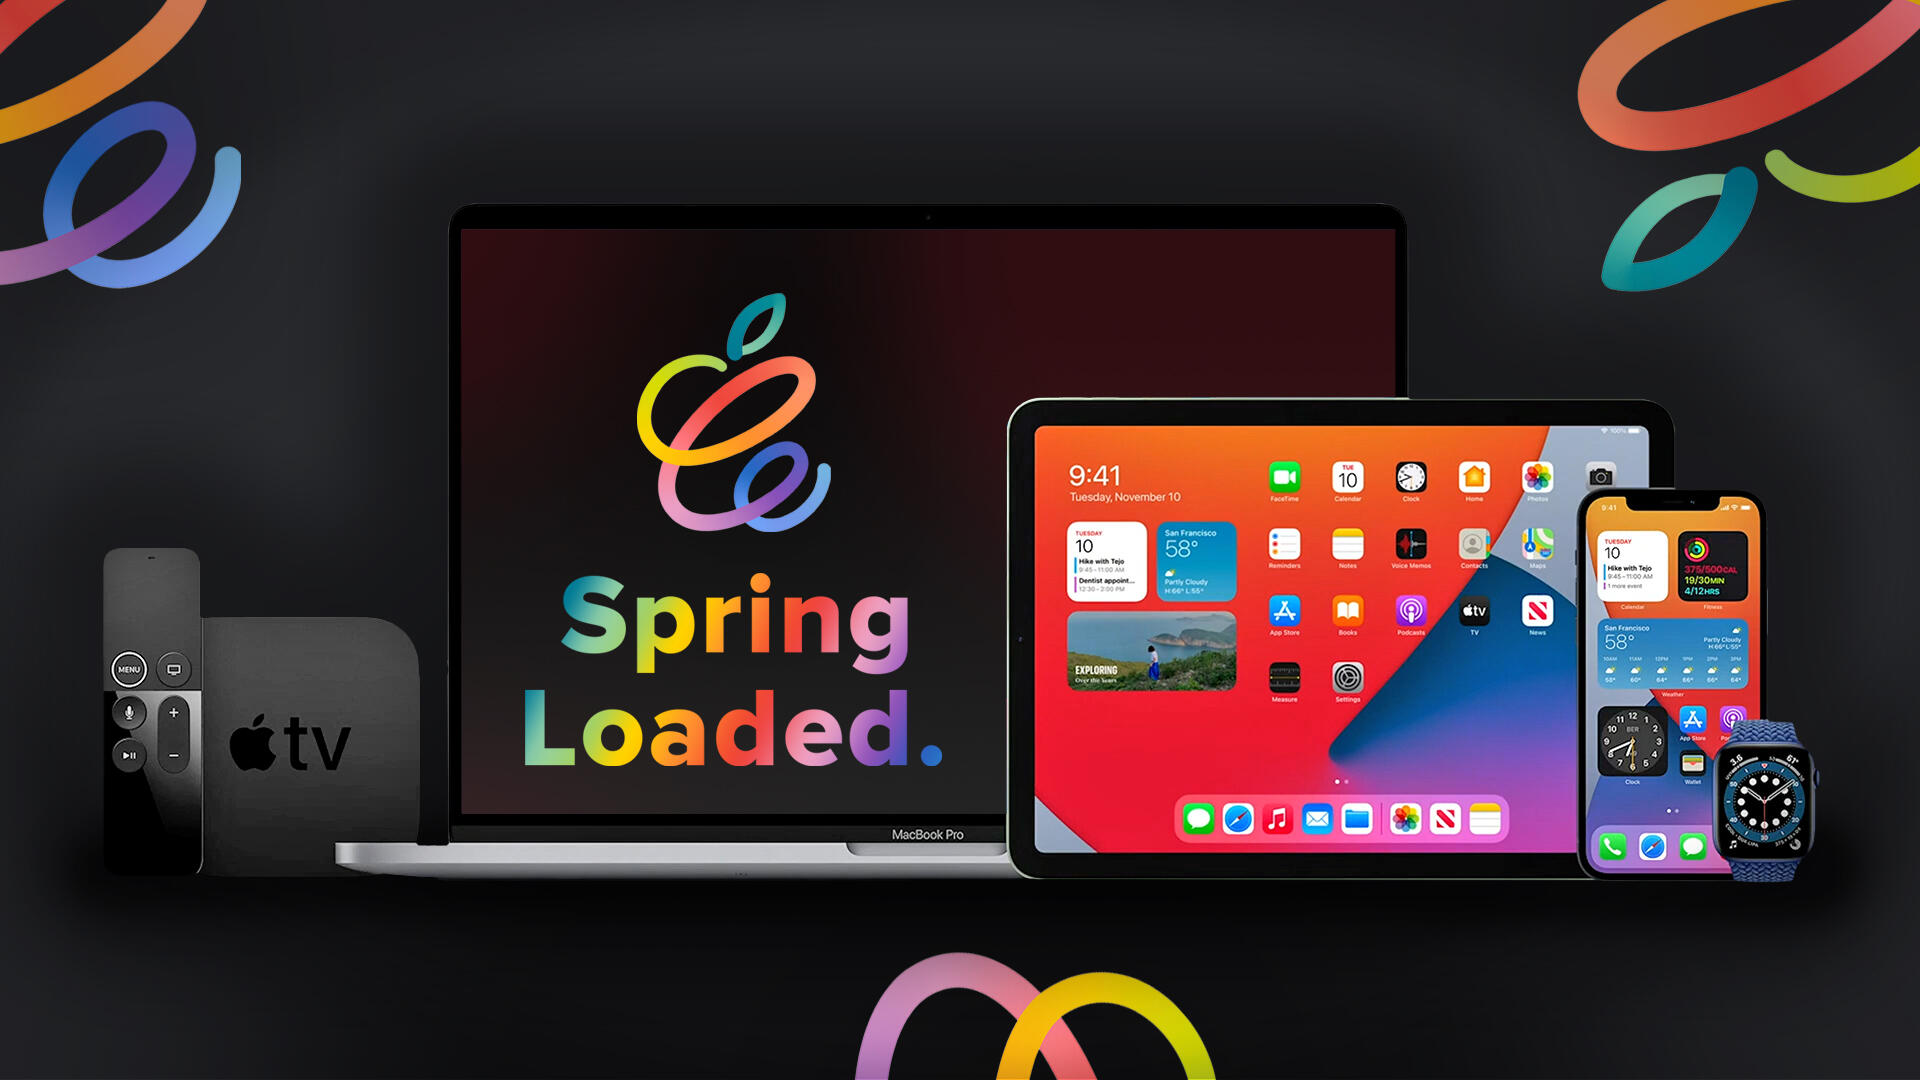 Video: What we expect from Apple's 2021 Spring Loaded event